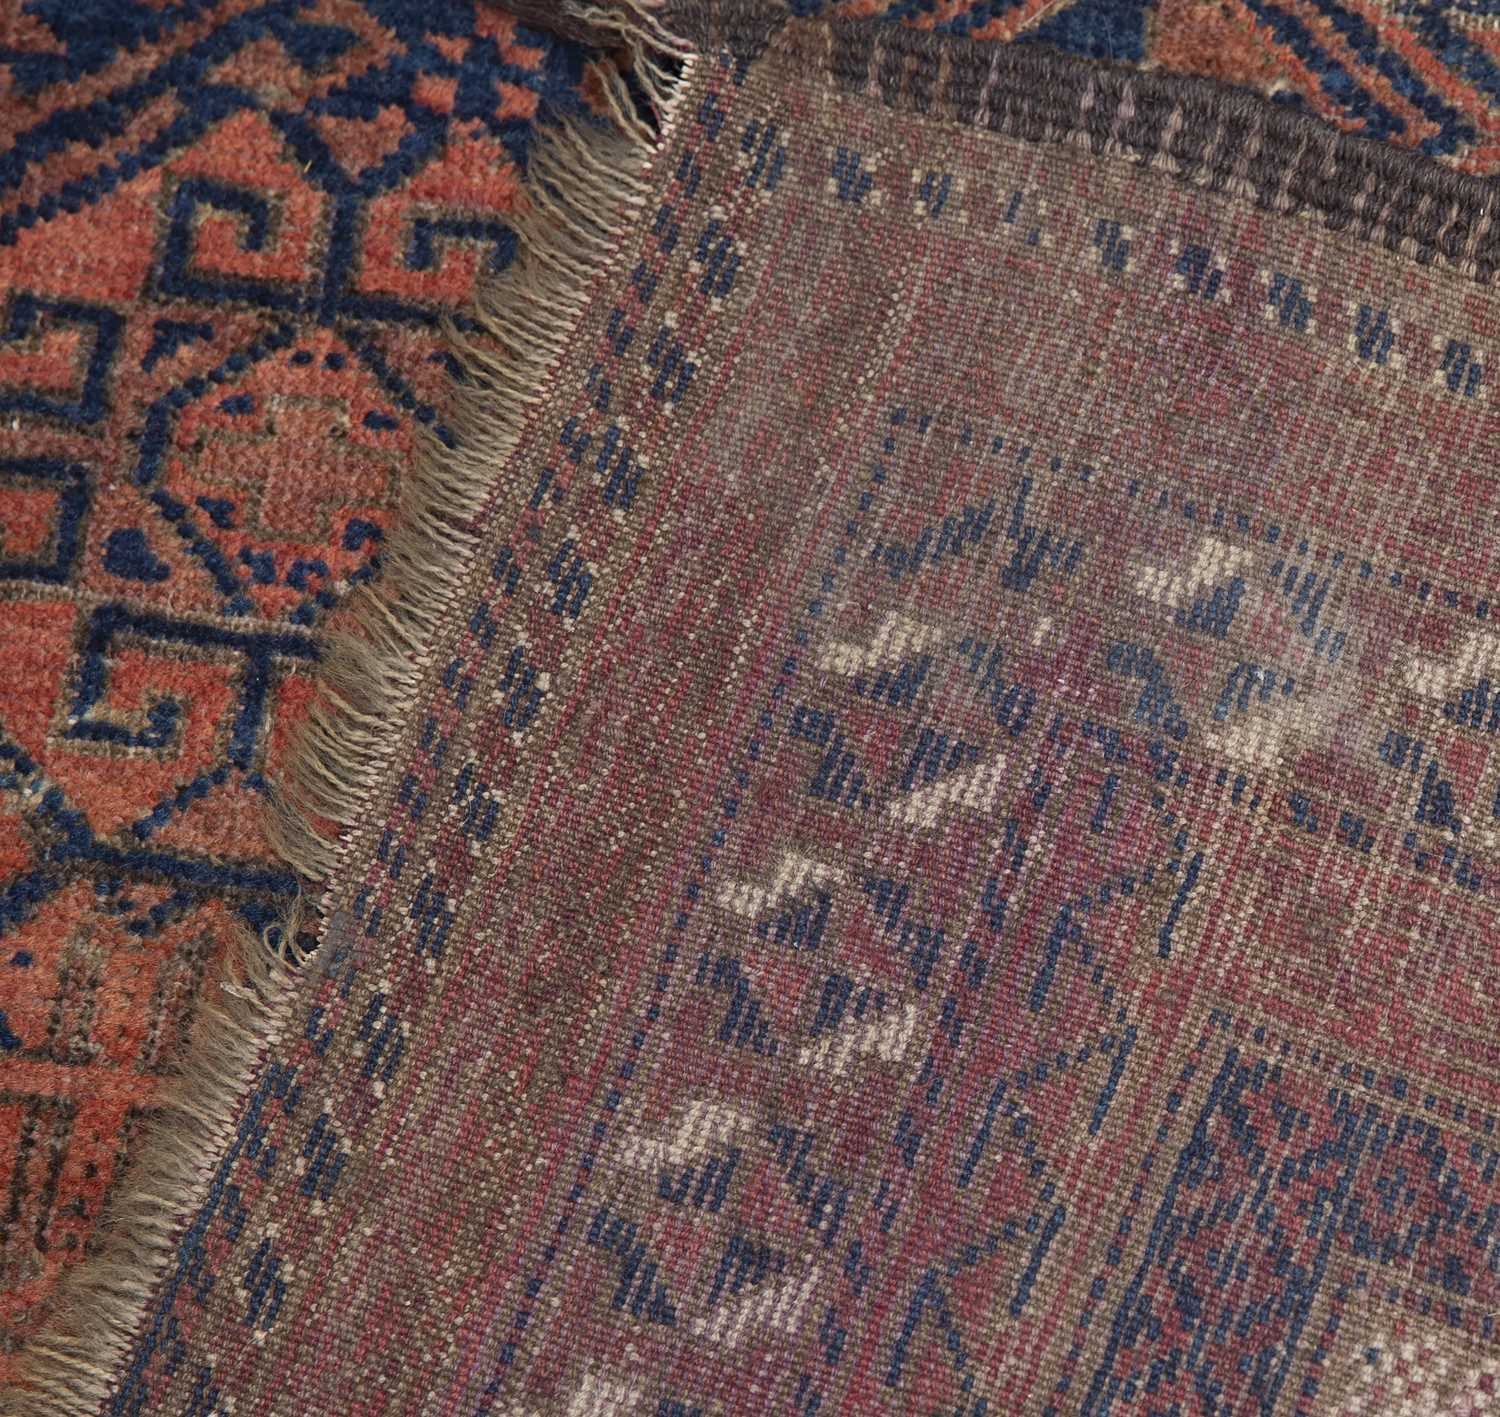 An old Belouch prayer rug with a central pattern of guls on a dark blue ground, 114 x 99cm and - Image 3 of 3